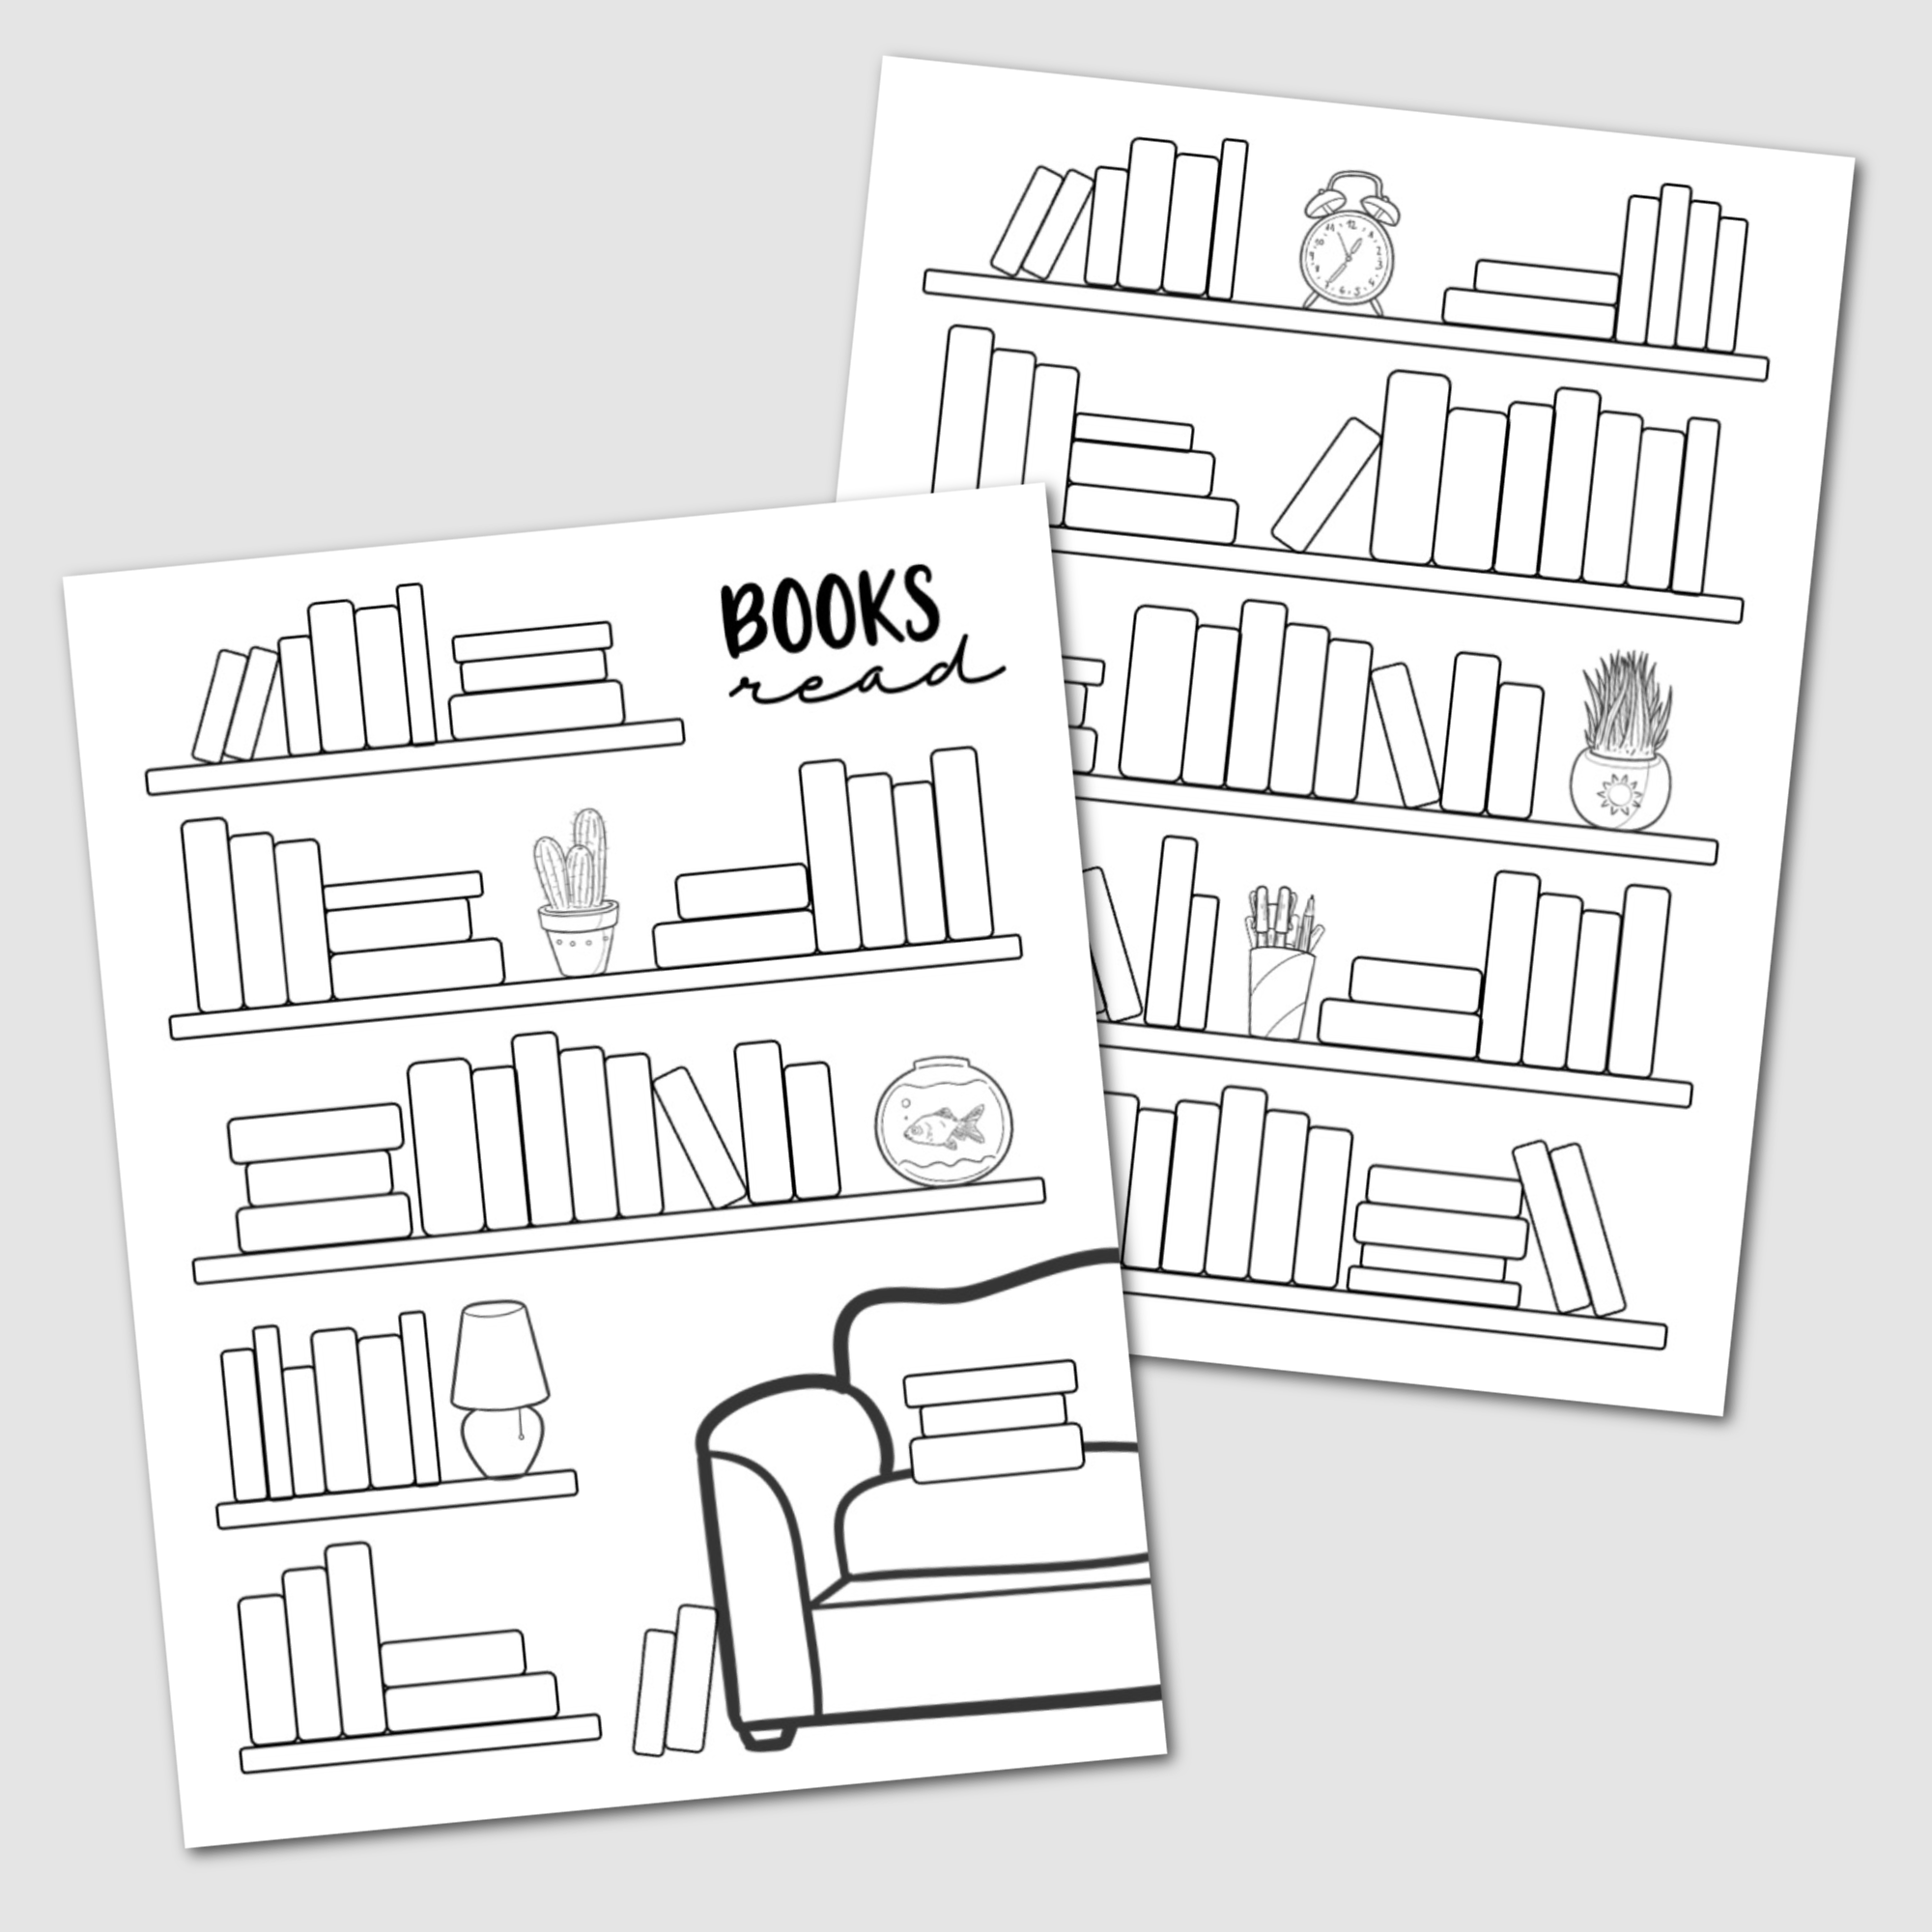 Books Read Printable Tracker - the Krafty Planner .png